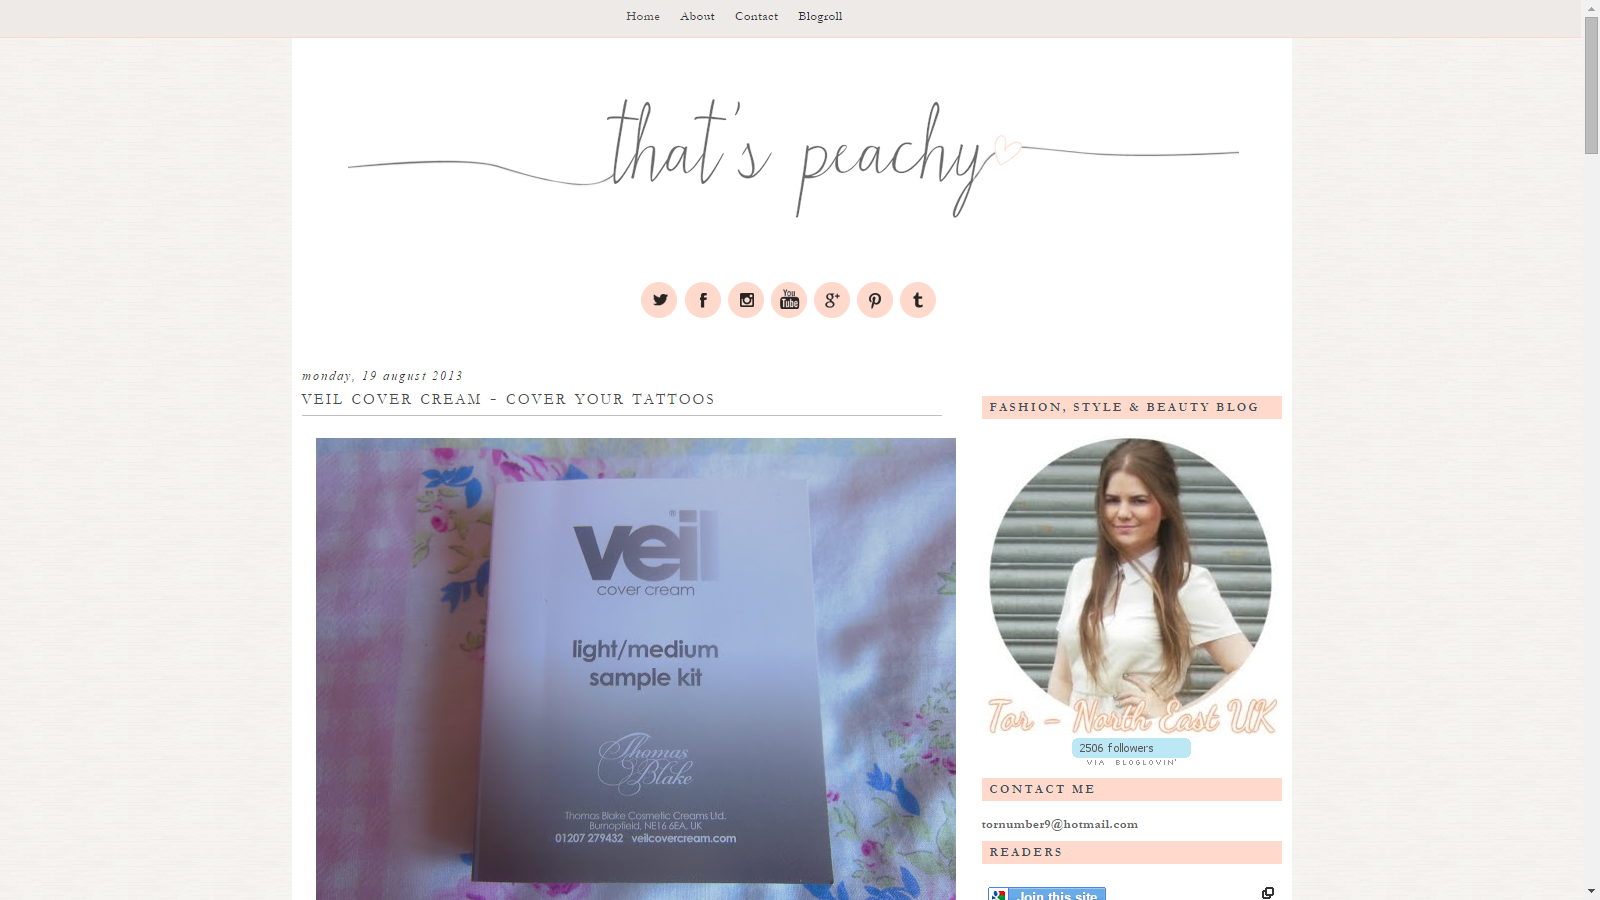 Blast From The Past: Veil Cover Cream Featured On That's Peachy